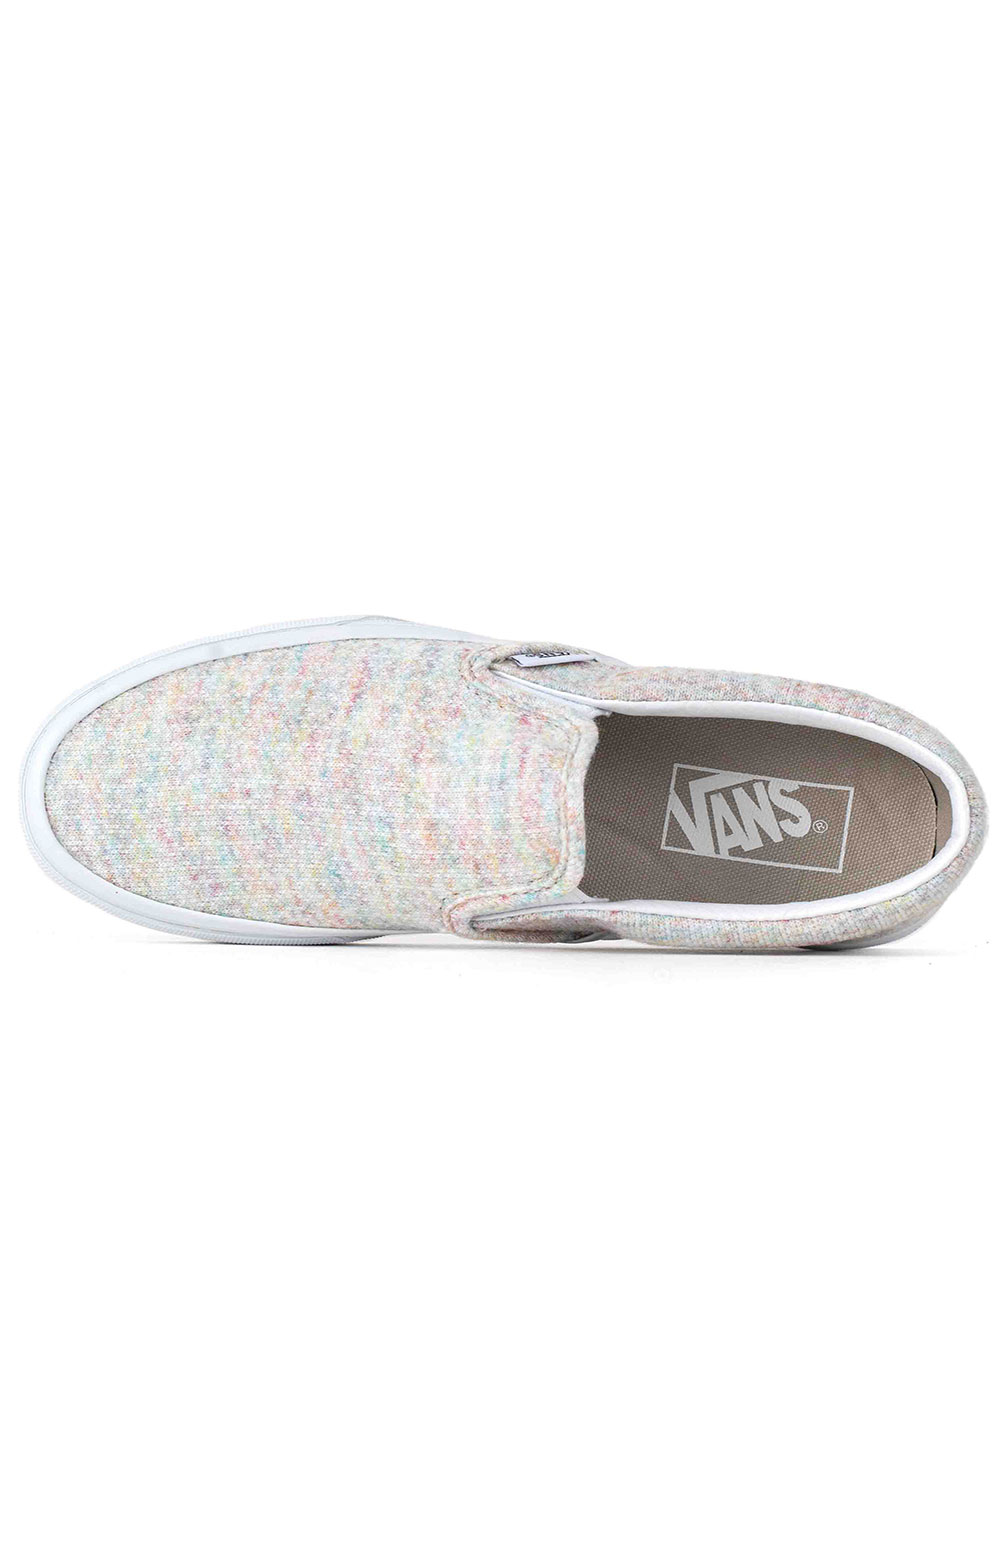 (U38WN%) Rainbow Jersey Classic Slip-On Shoe - Bit Of Blue  3